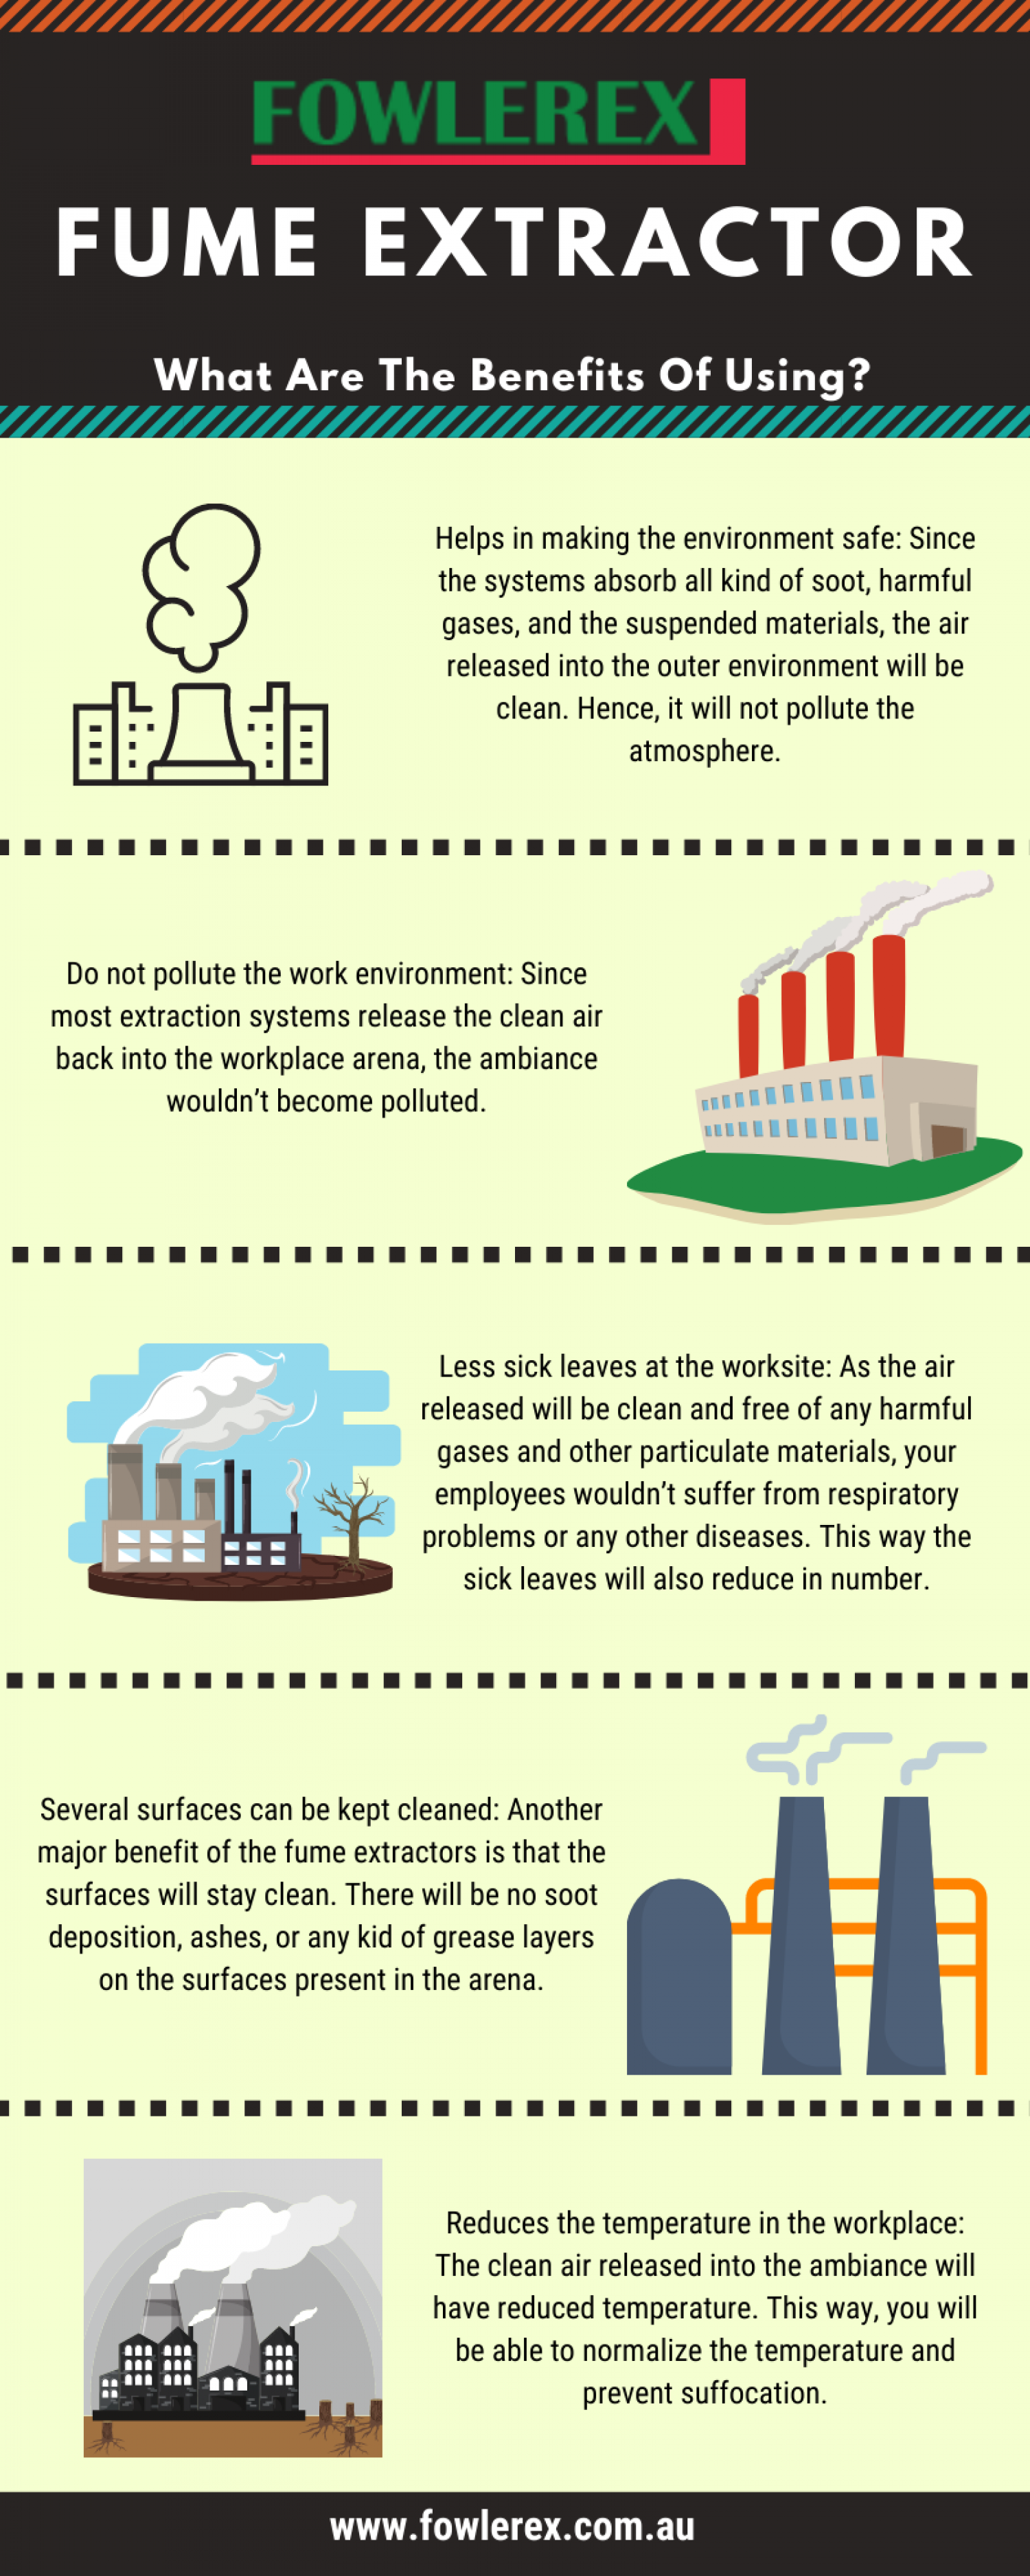 What Are The Benefits Of Using A Fume Extractor? By Fowlerex  Infographic